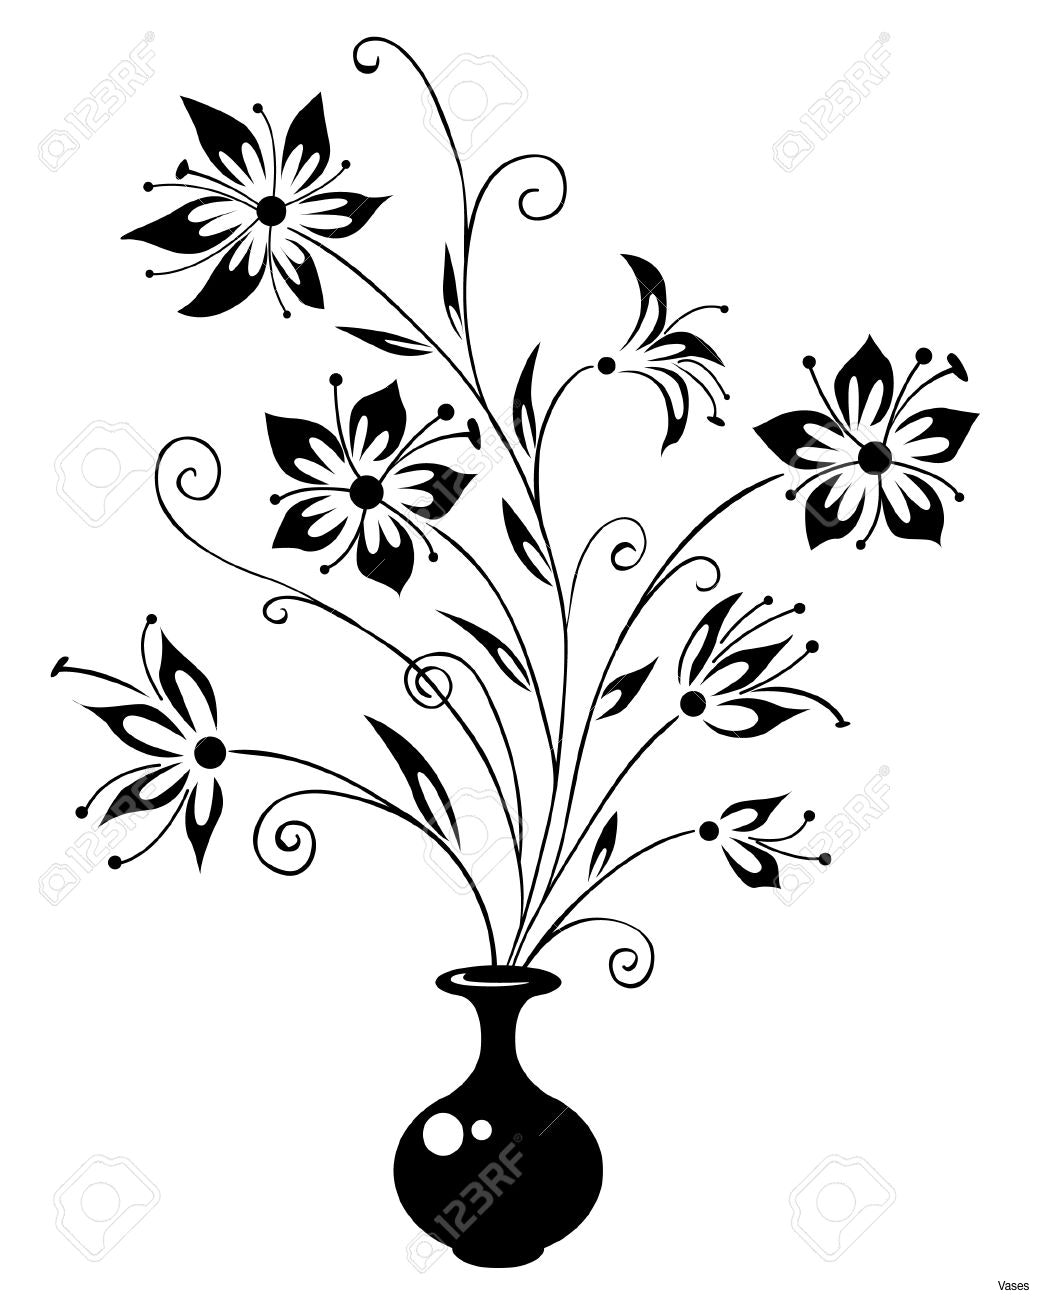 1040x1300 Vases How To Draw Vase Of Flowers Incoming H4 Pencil Art Images